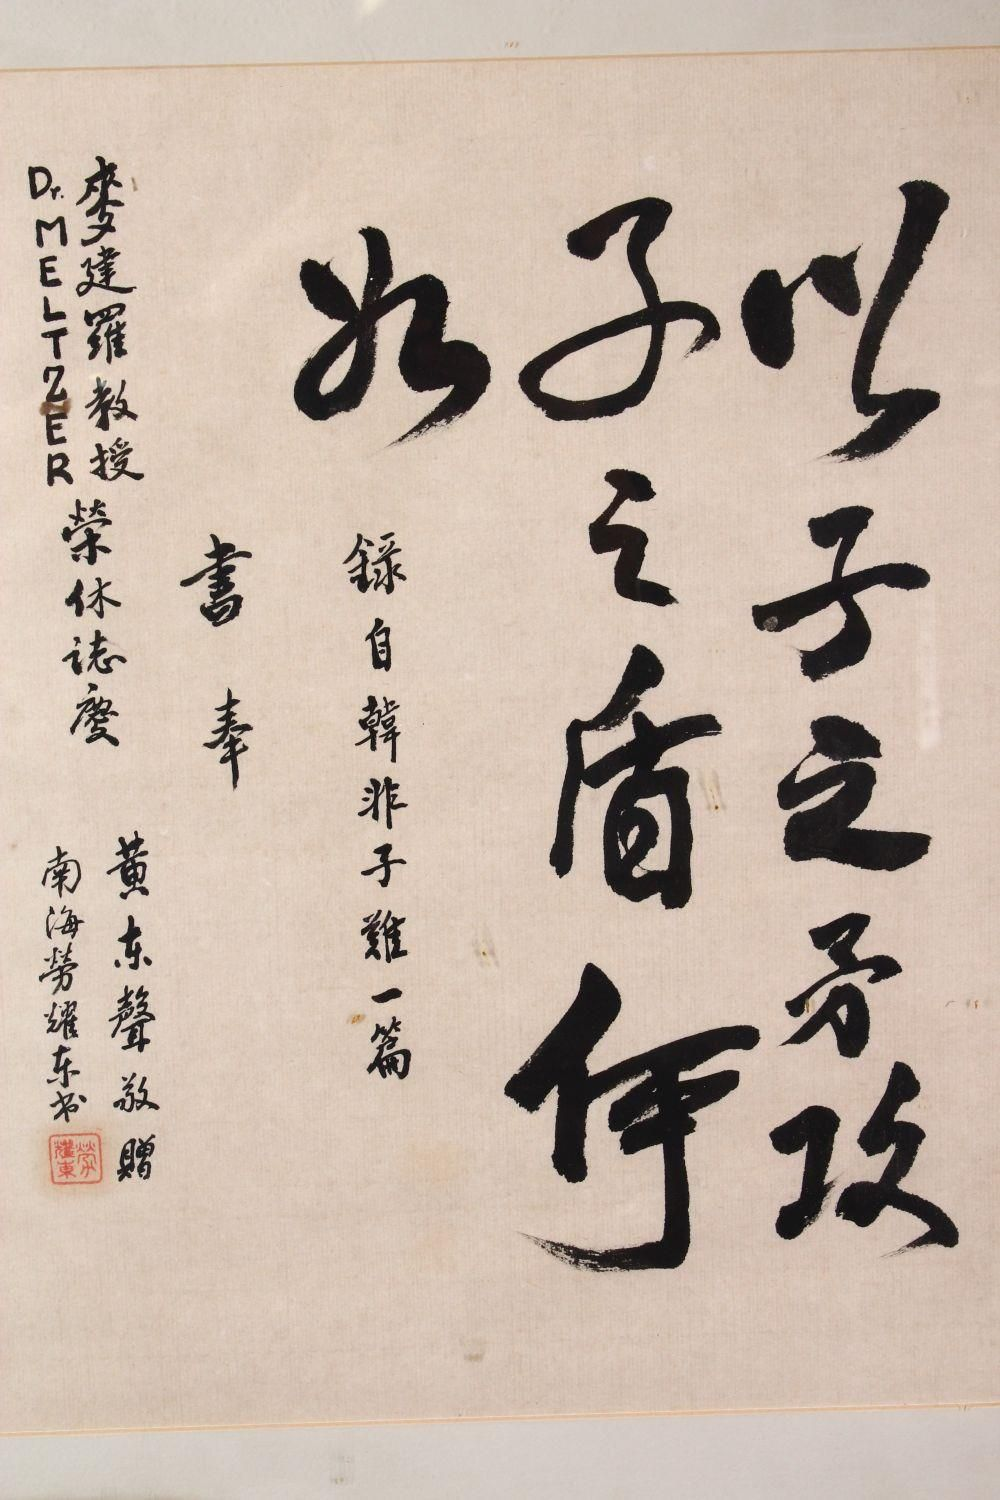 A CHINESE PAINTED CALLIGRAPHY WORK PICTURE, a presentation painting for DR Meltzer from Waleter, - Image 2 of 5